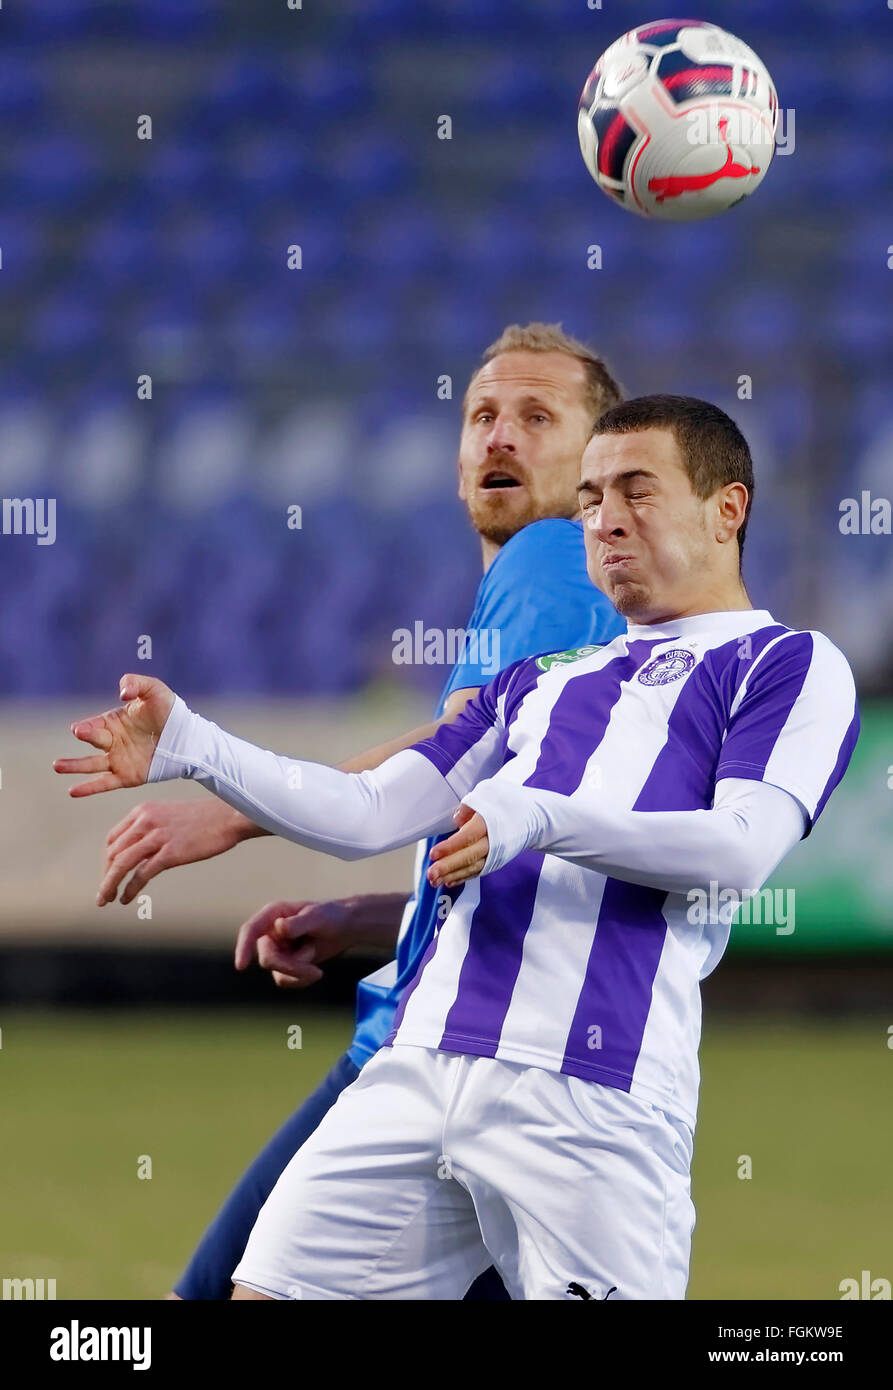 Budapest, Hungary. 20th February,  2016. Air battle between Kylian Hazard of Ujpest (r) and Sandor Torghelle of - Stock Image